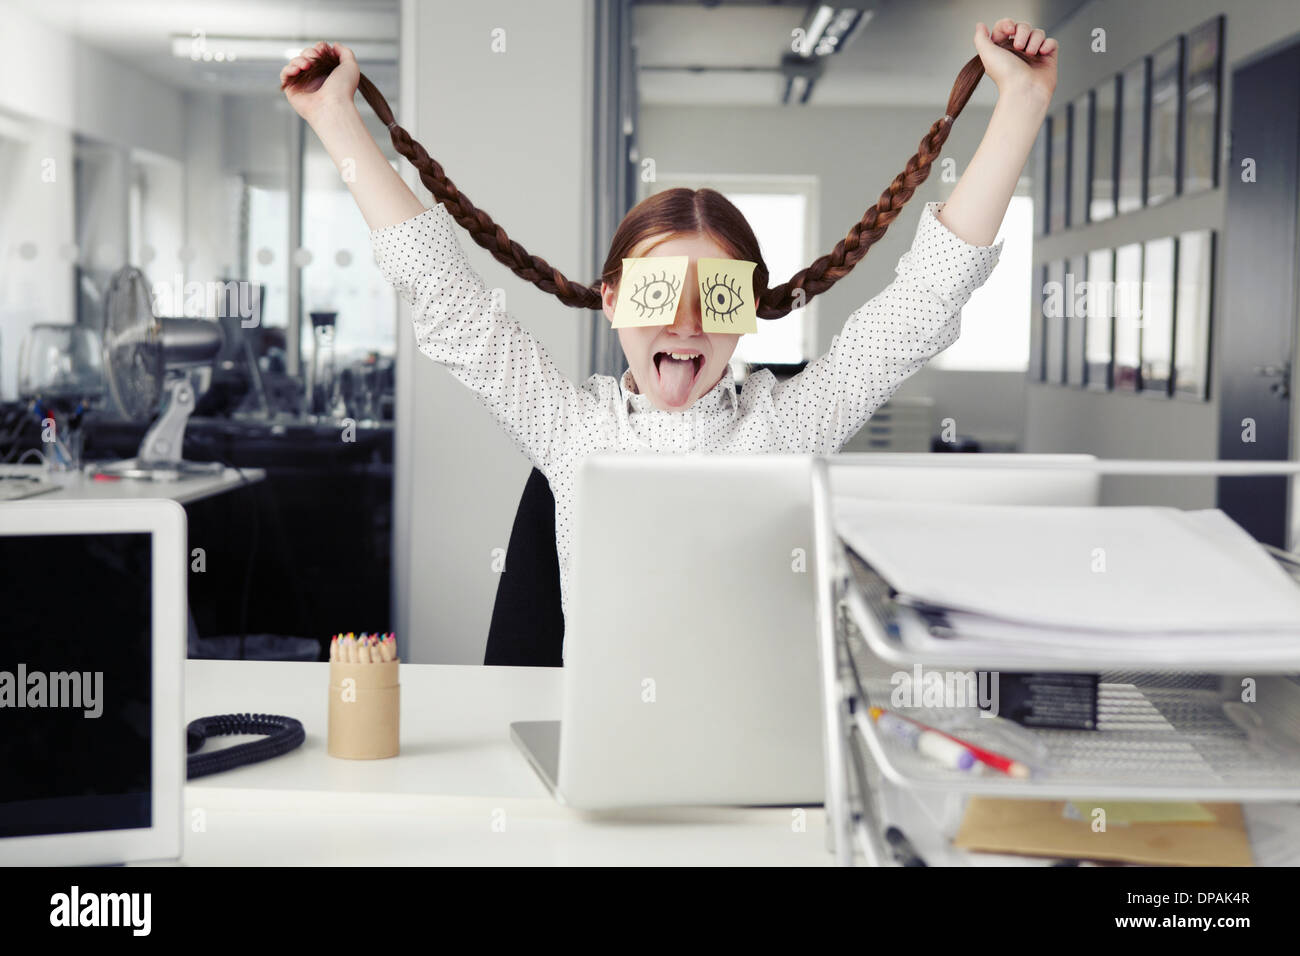 Girl in office with adhesive notes covering eyes holding plaits - Stock Image